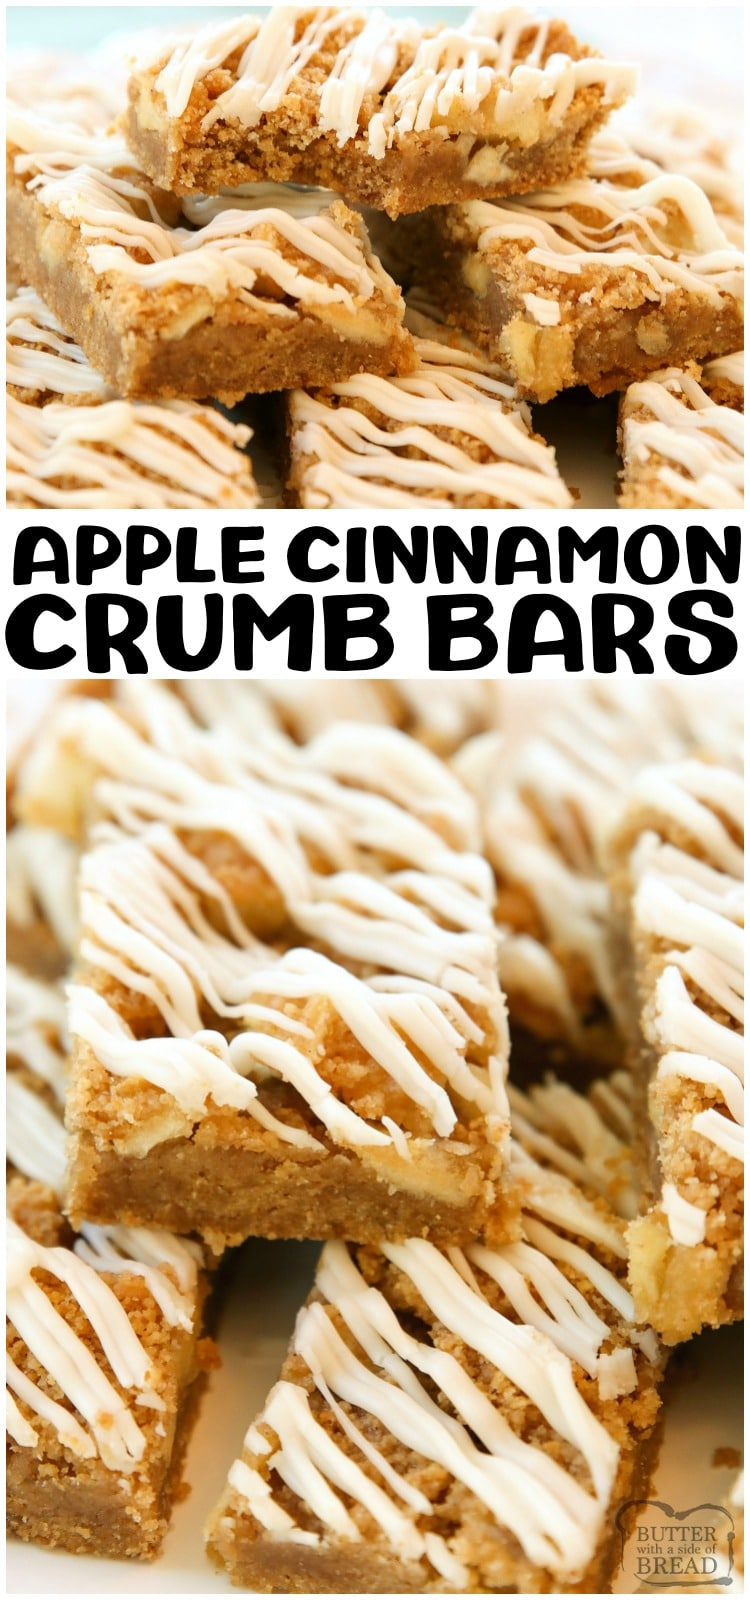 Apple Cinnamon Crumb Bars made with fresh apple, brown sugar, graham crackers & cinnamon! Simple baked apple bars recipe topped with a vanilla glaze.